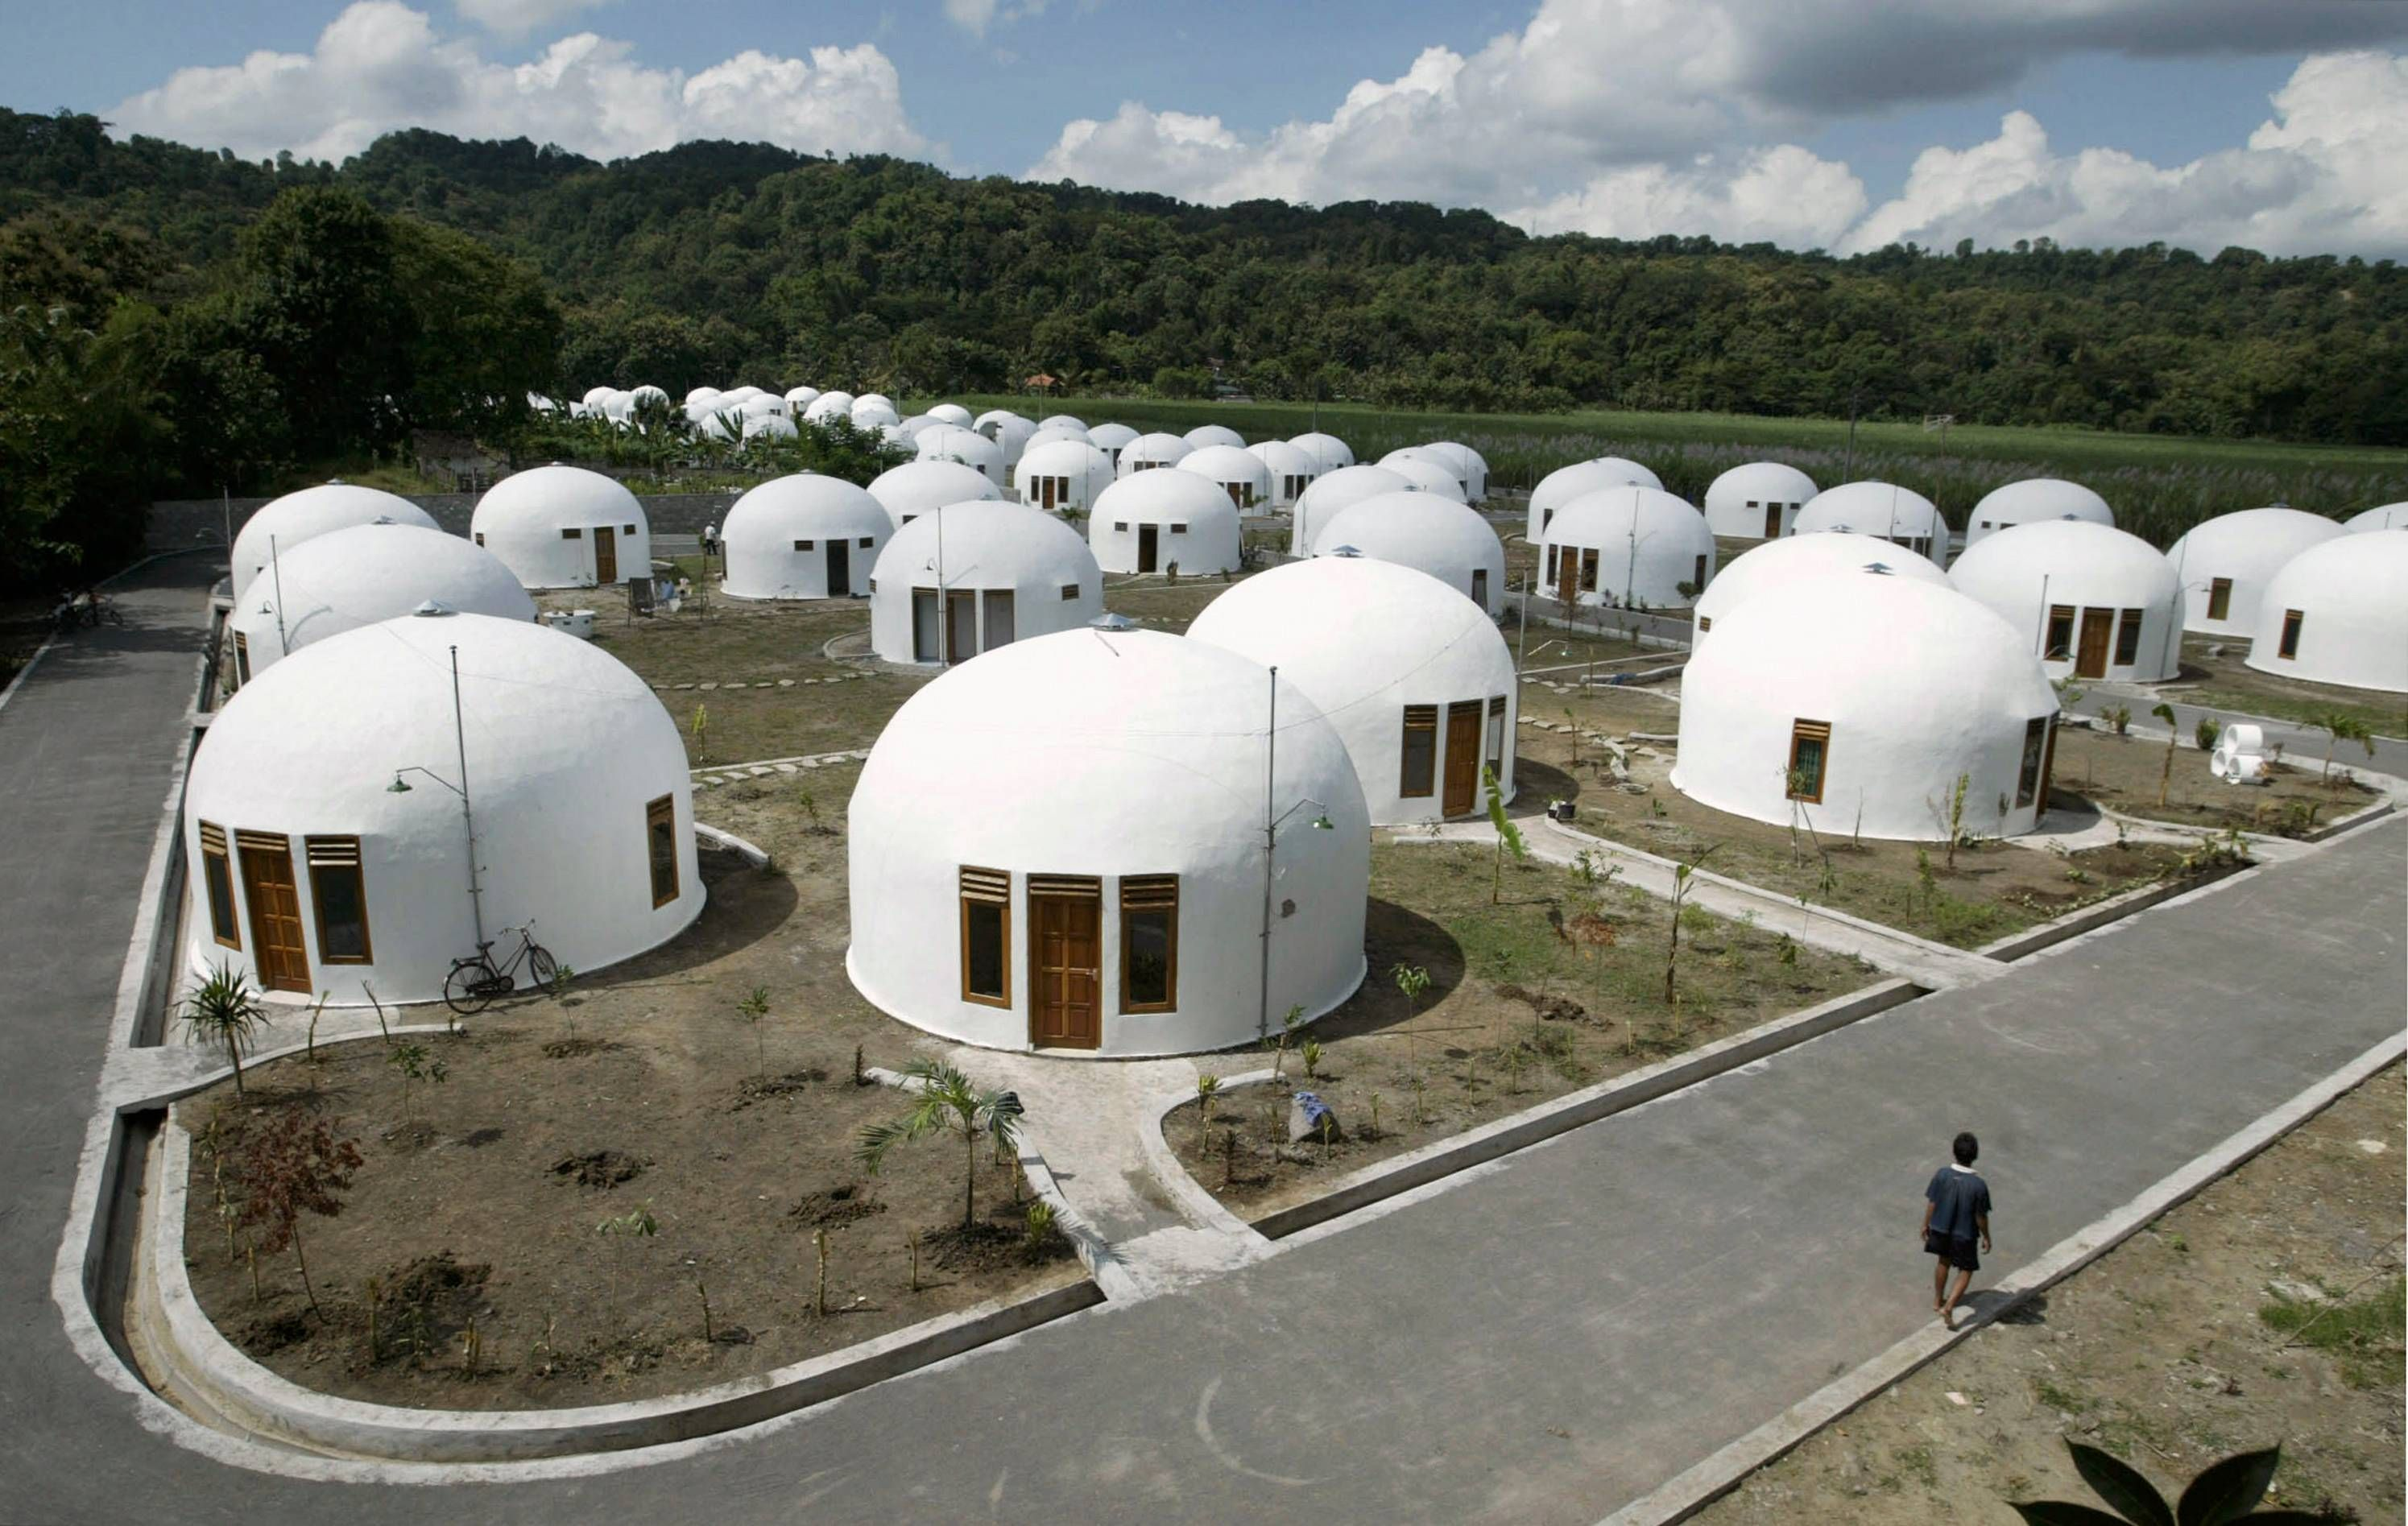 These roughly 70 dome houses were built